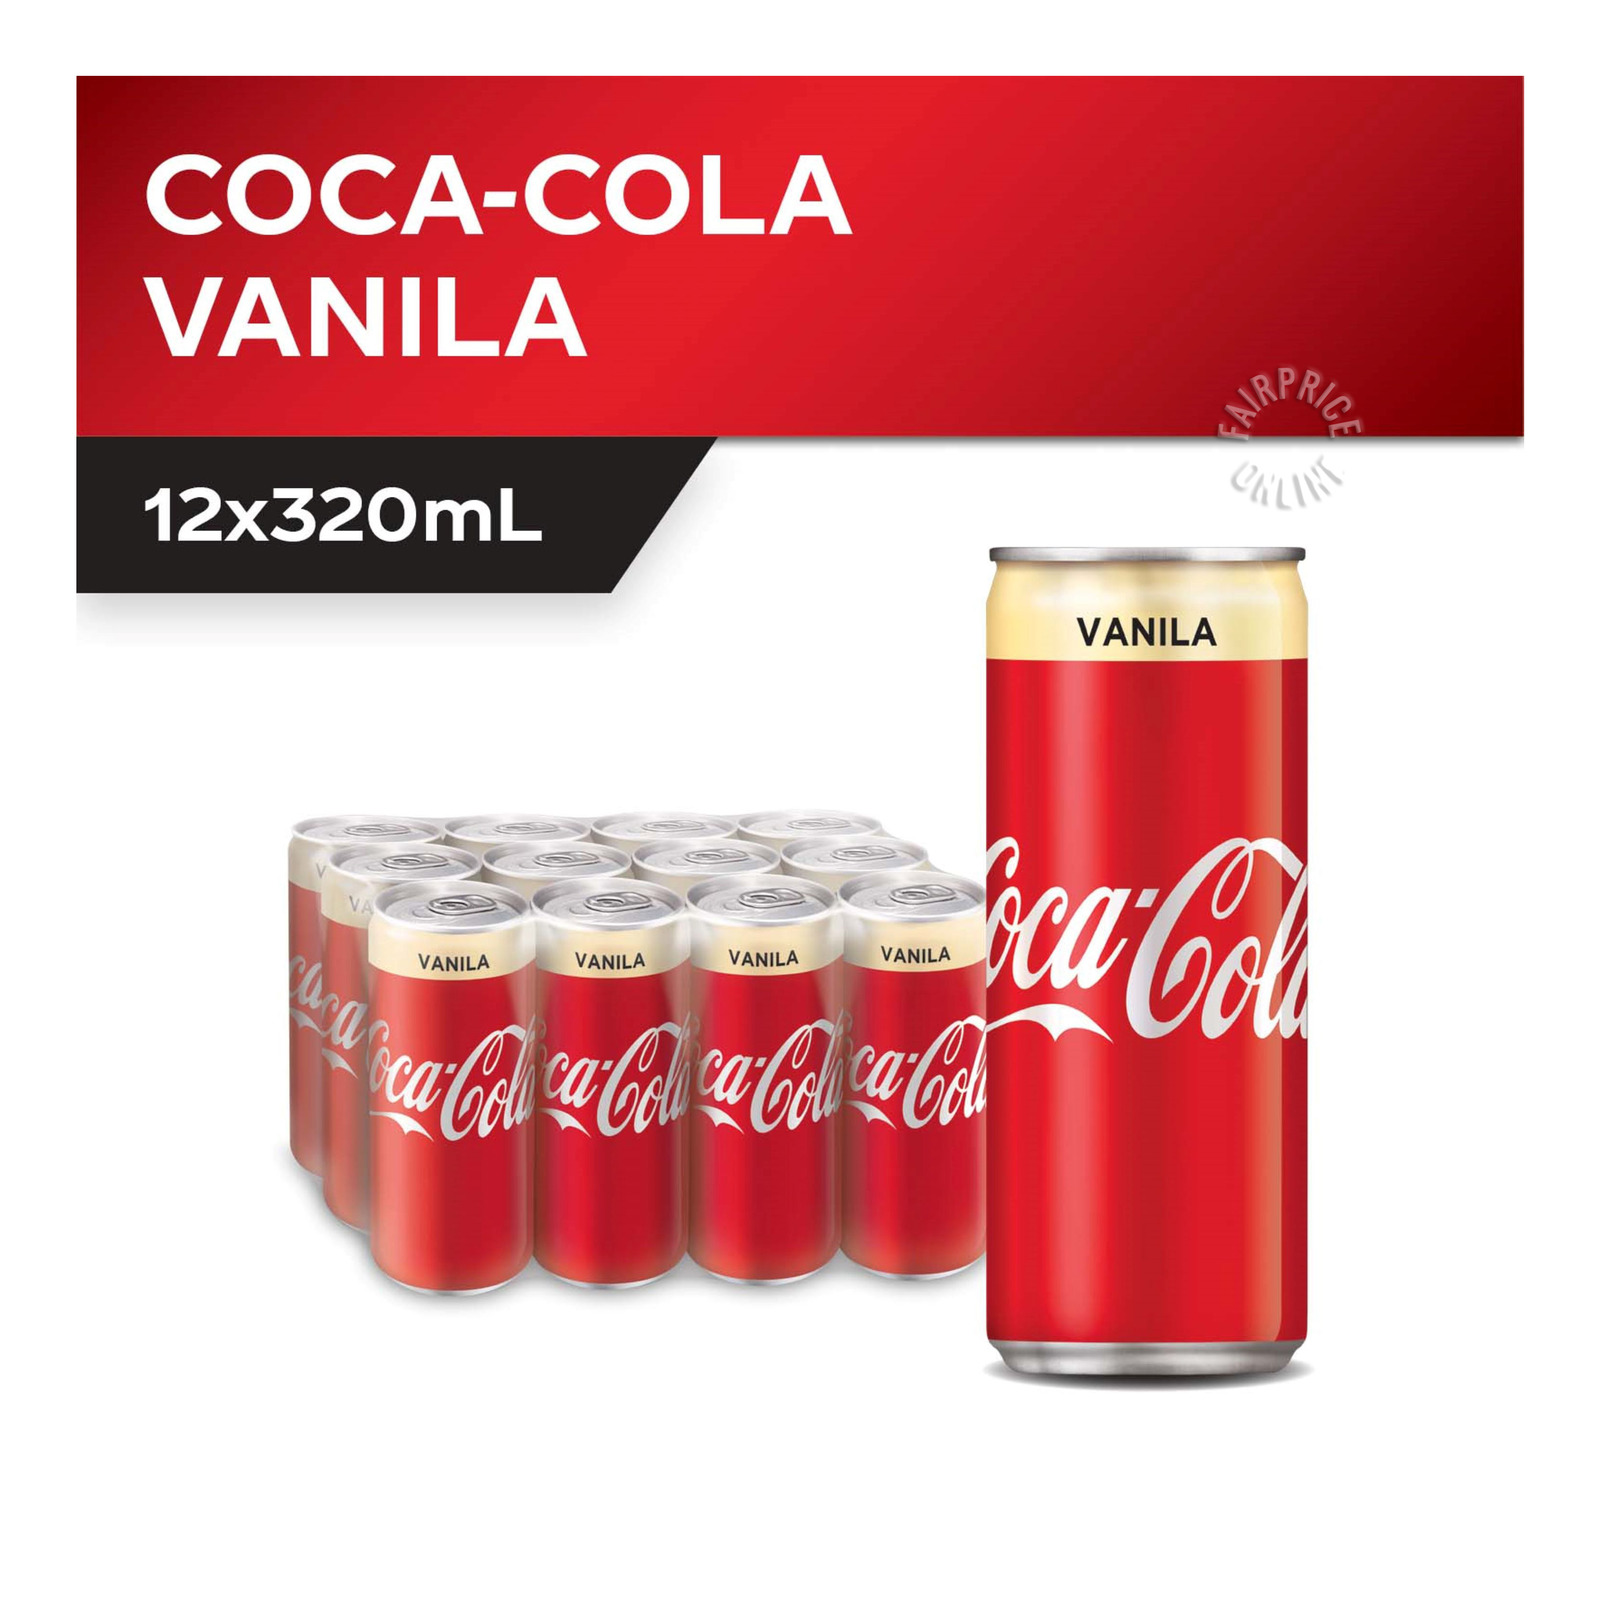 COCA-COLA Coke Vanilla 12sX320ml